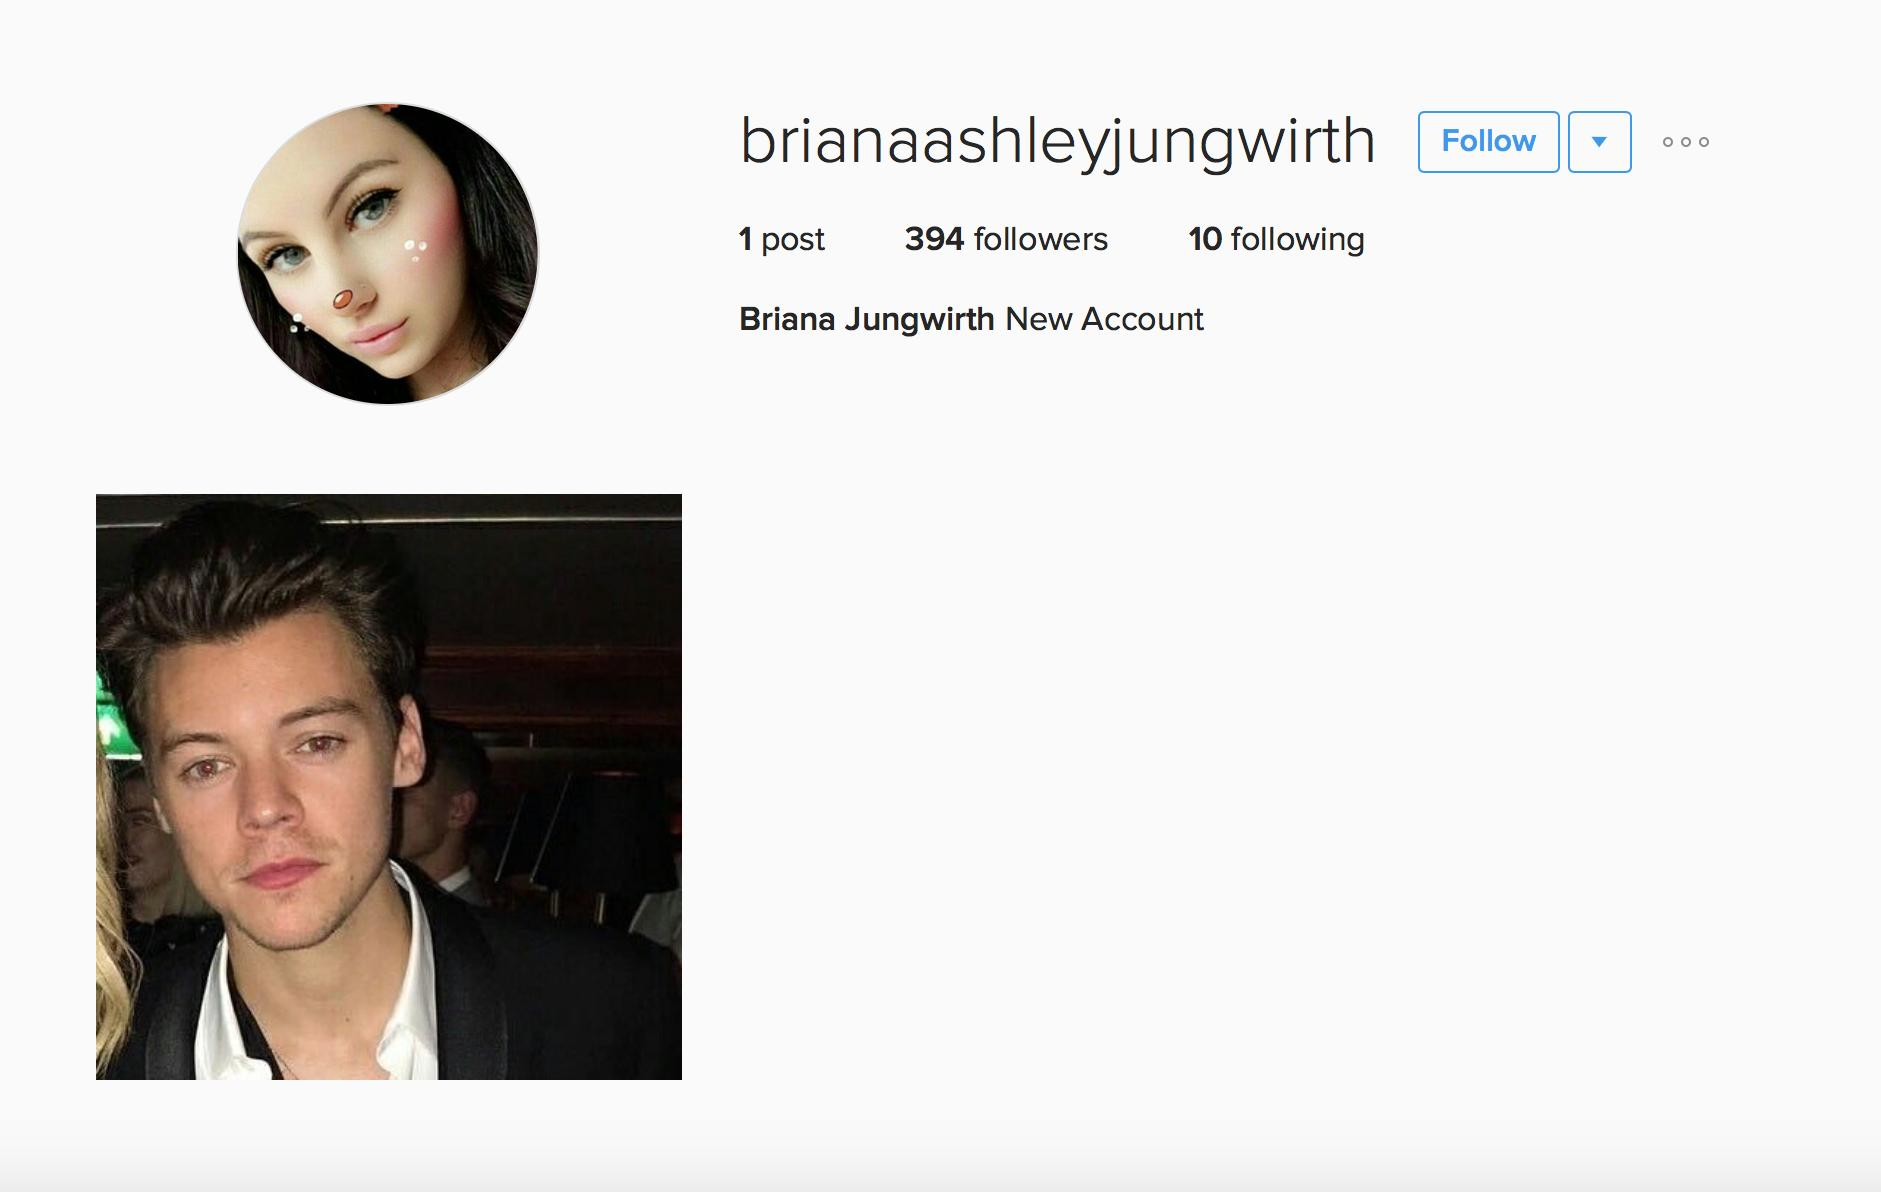 Briana Jungwirth Instagram Account